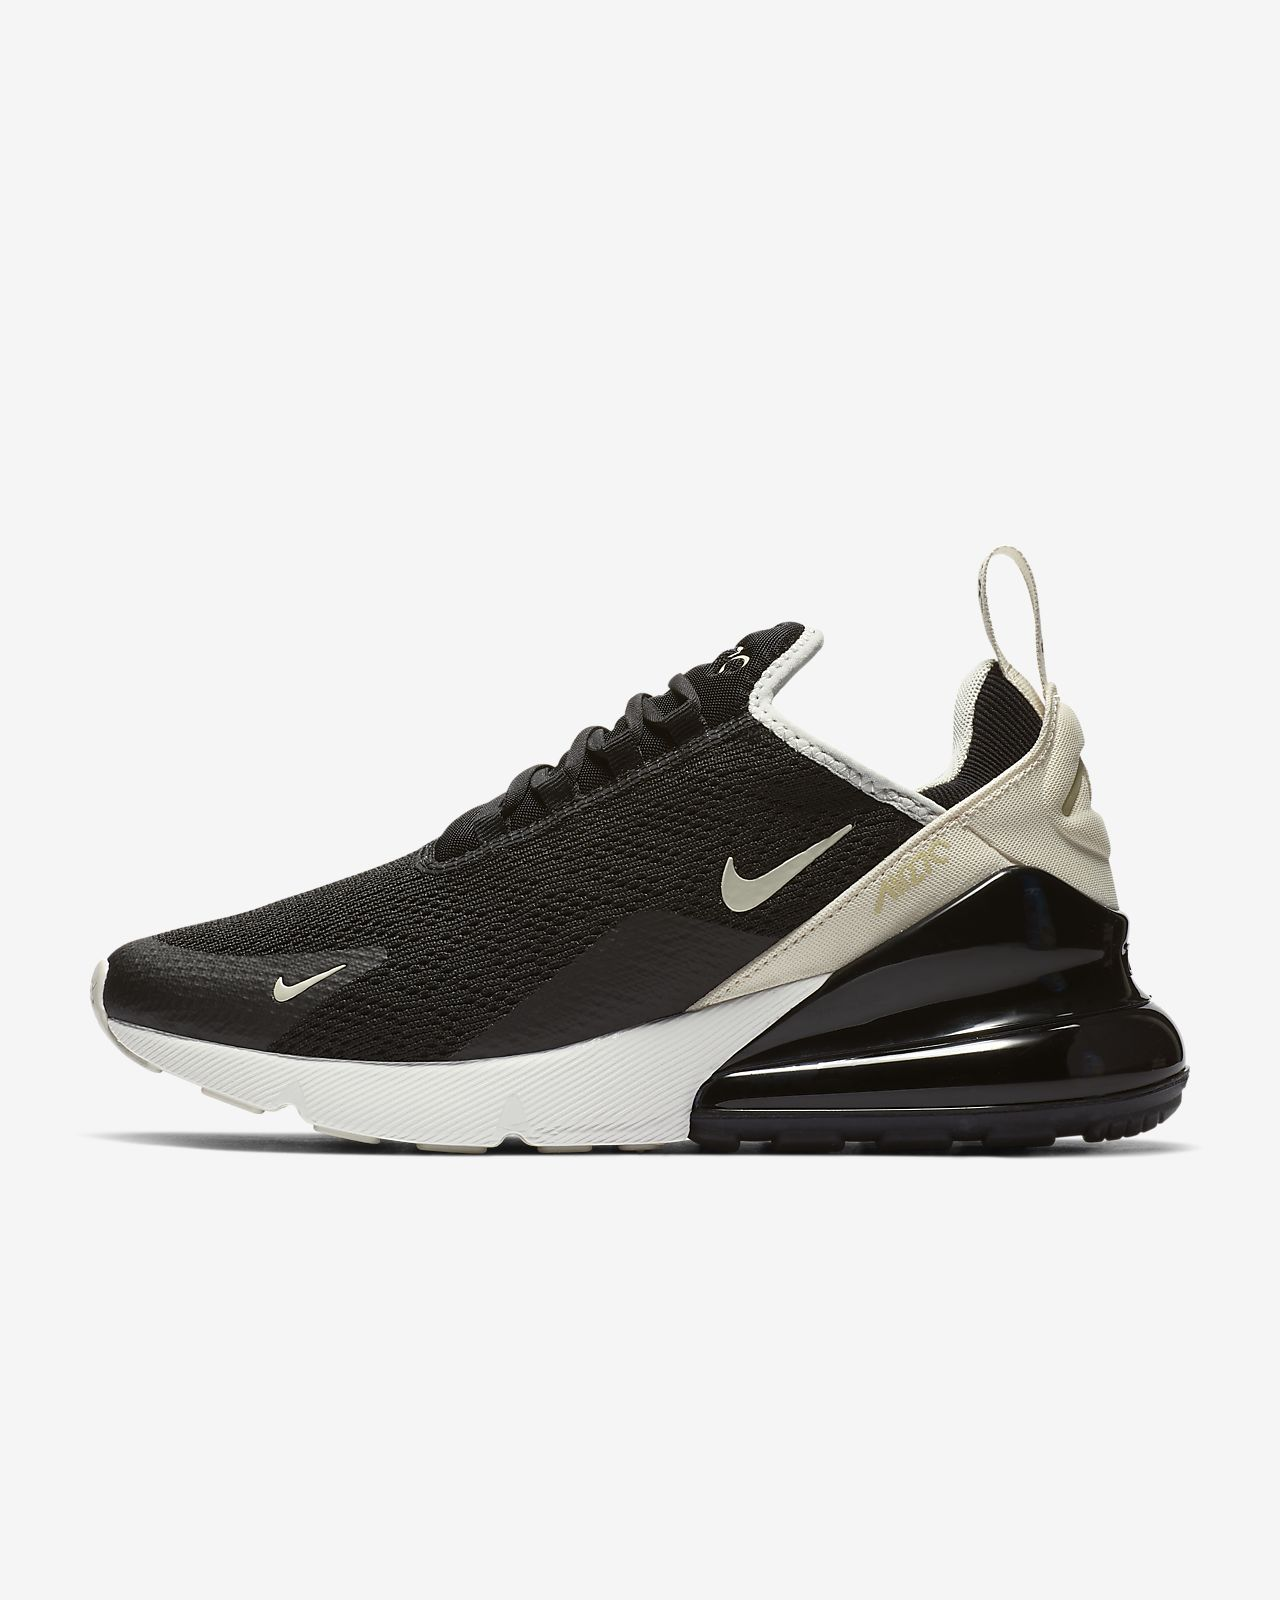 in stock b4317 82e04 Women s Shoe. Nike Air Max 270